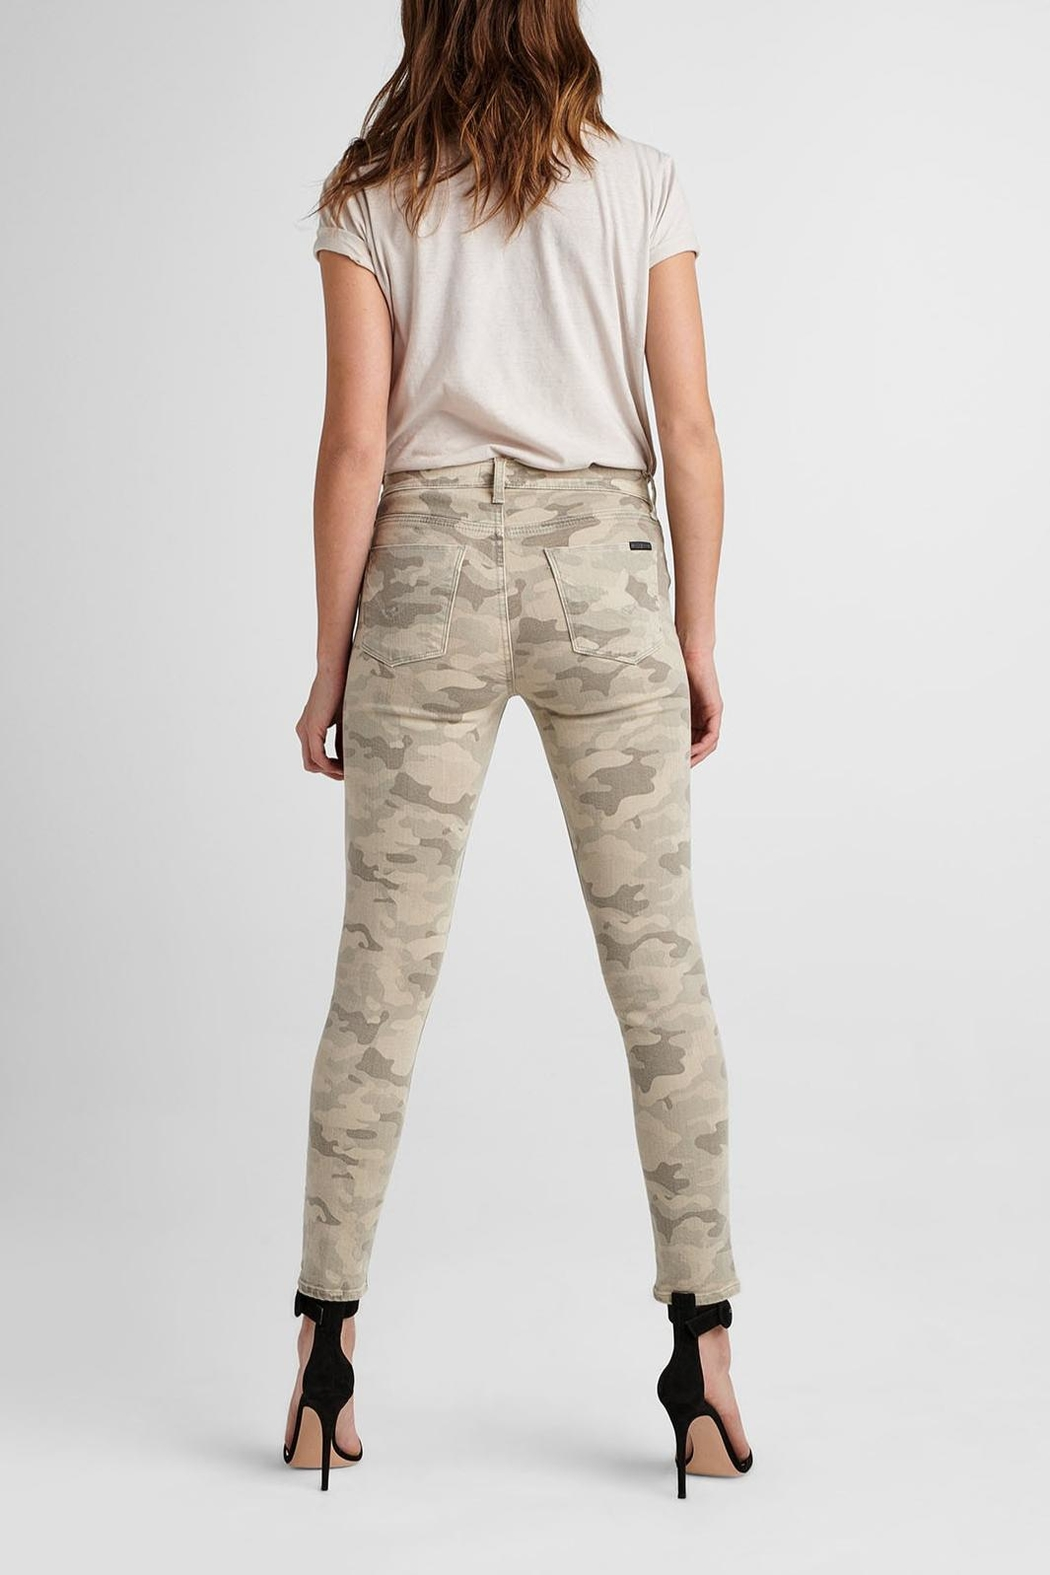 Hudson Jeans Army Camo Ankle-Skinny - Side Cropped Image